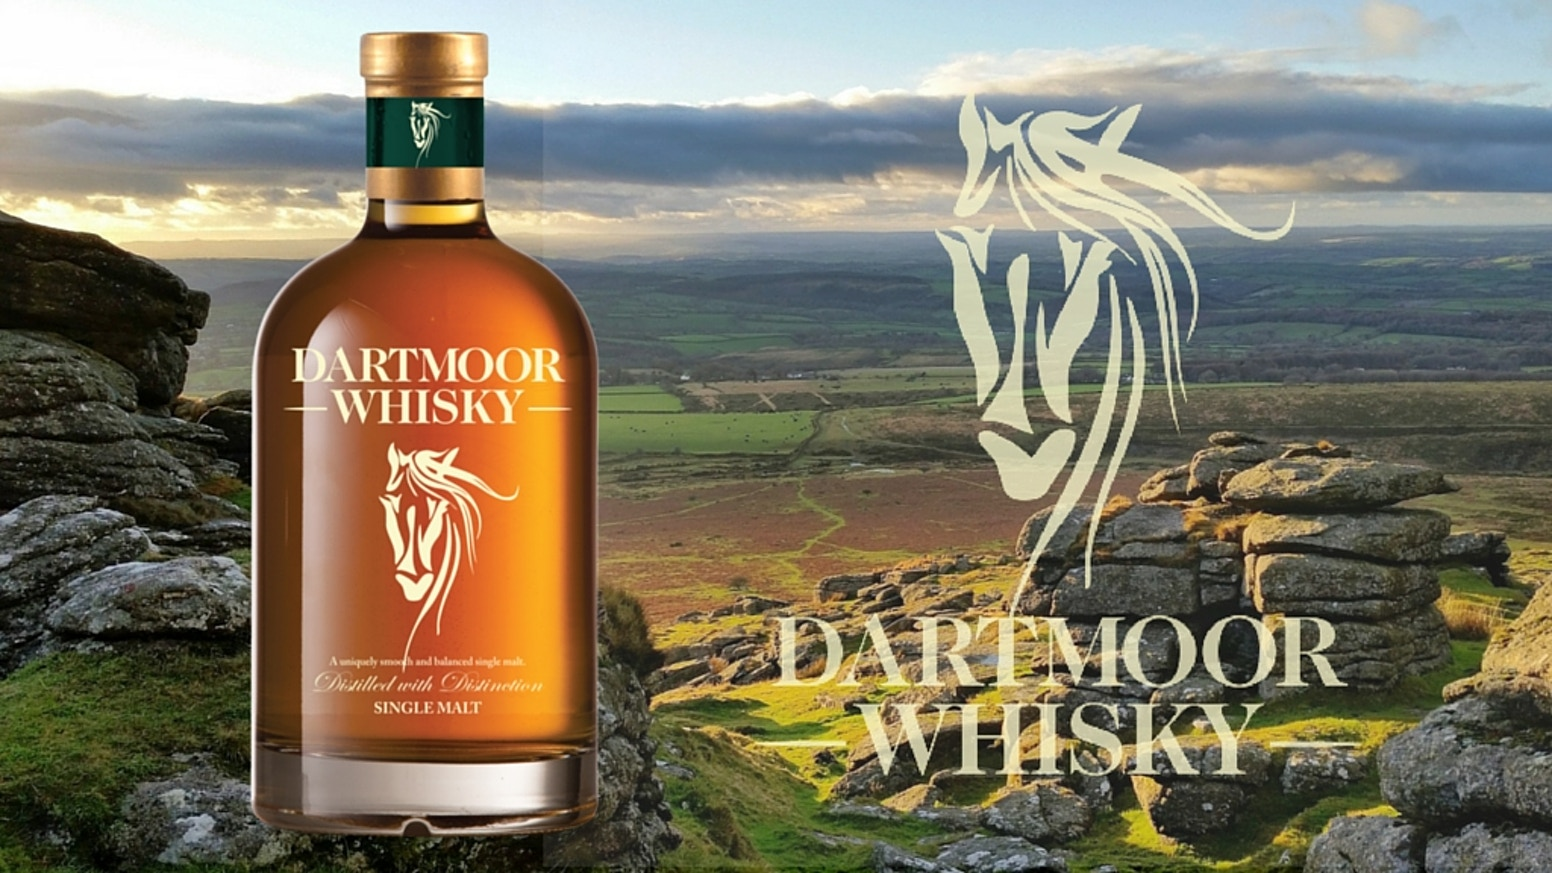 Devon's first whisky distillery will produce a single malt whisky, made with Dartmoor malted barley and pure Dartmoor Spring Water.